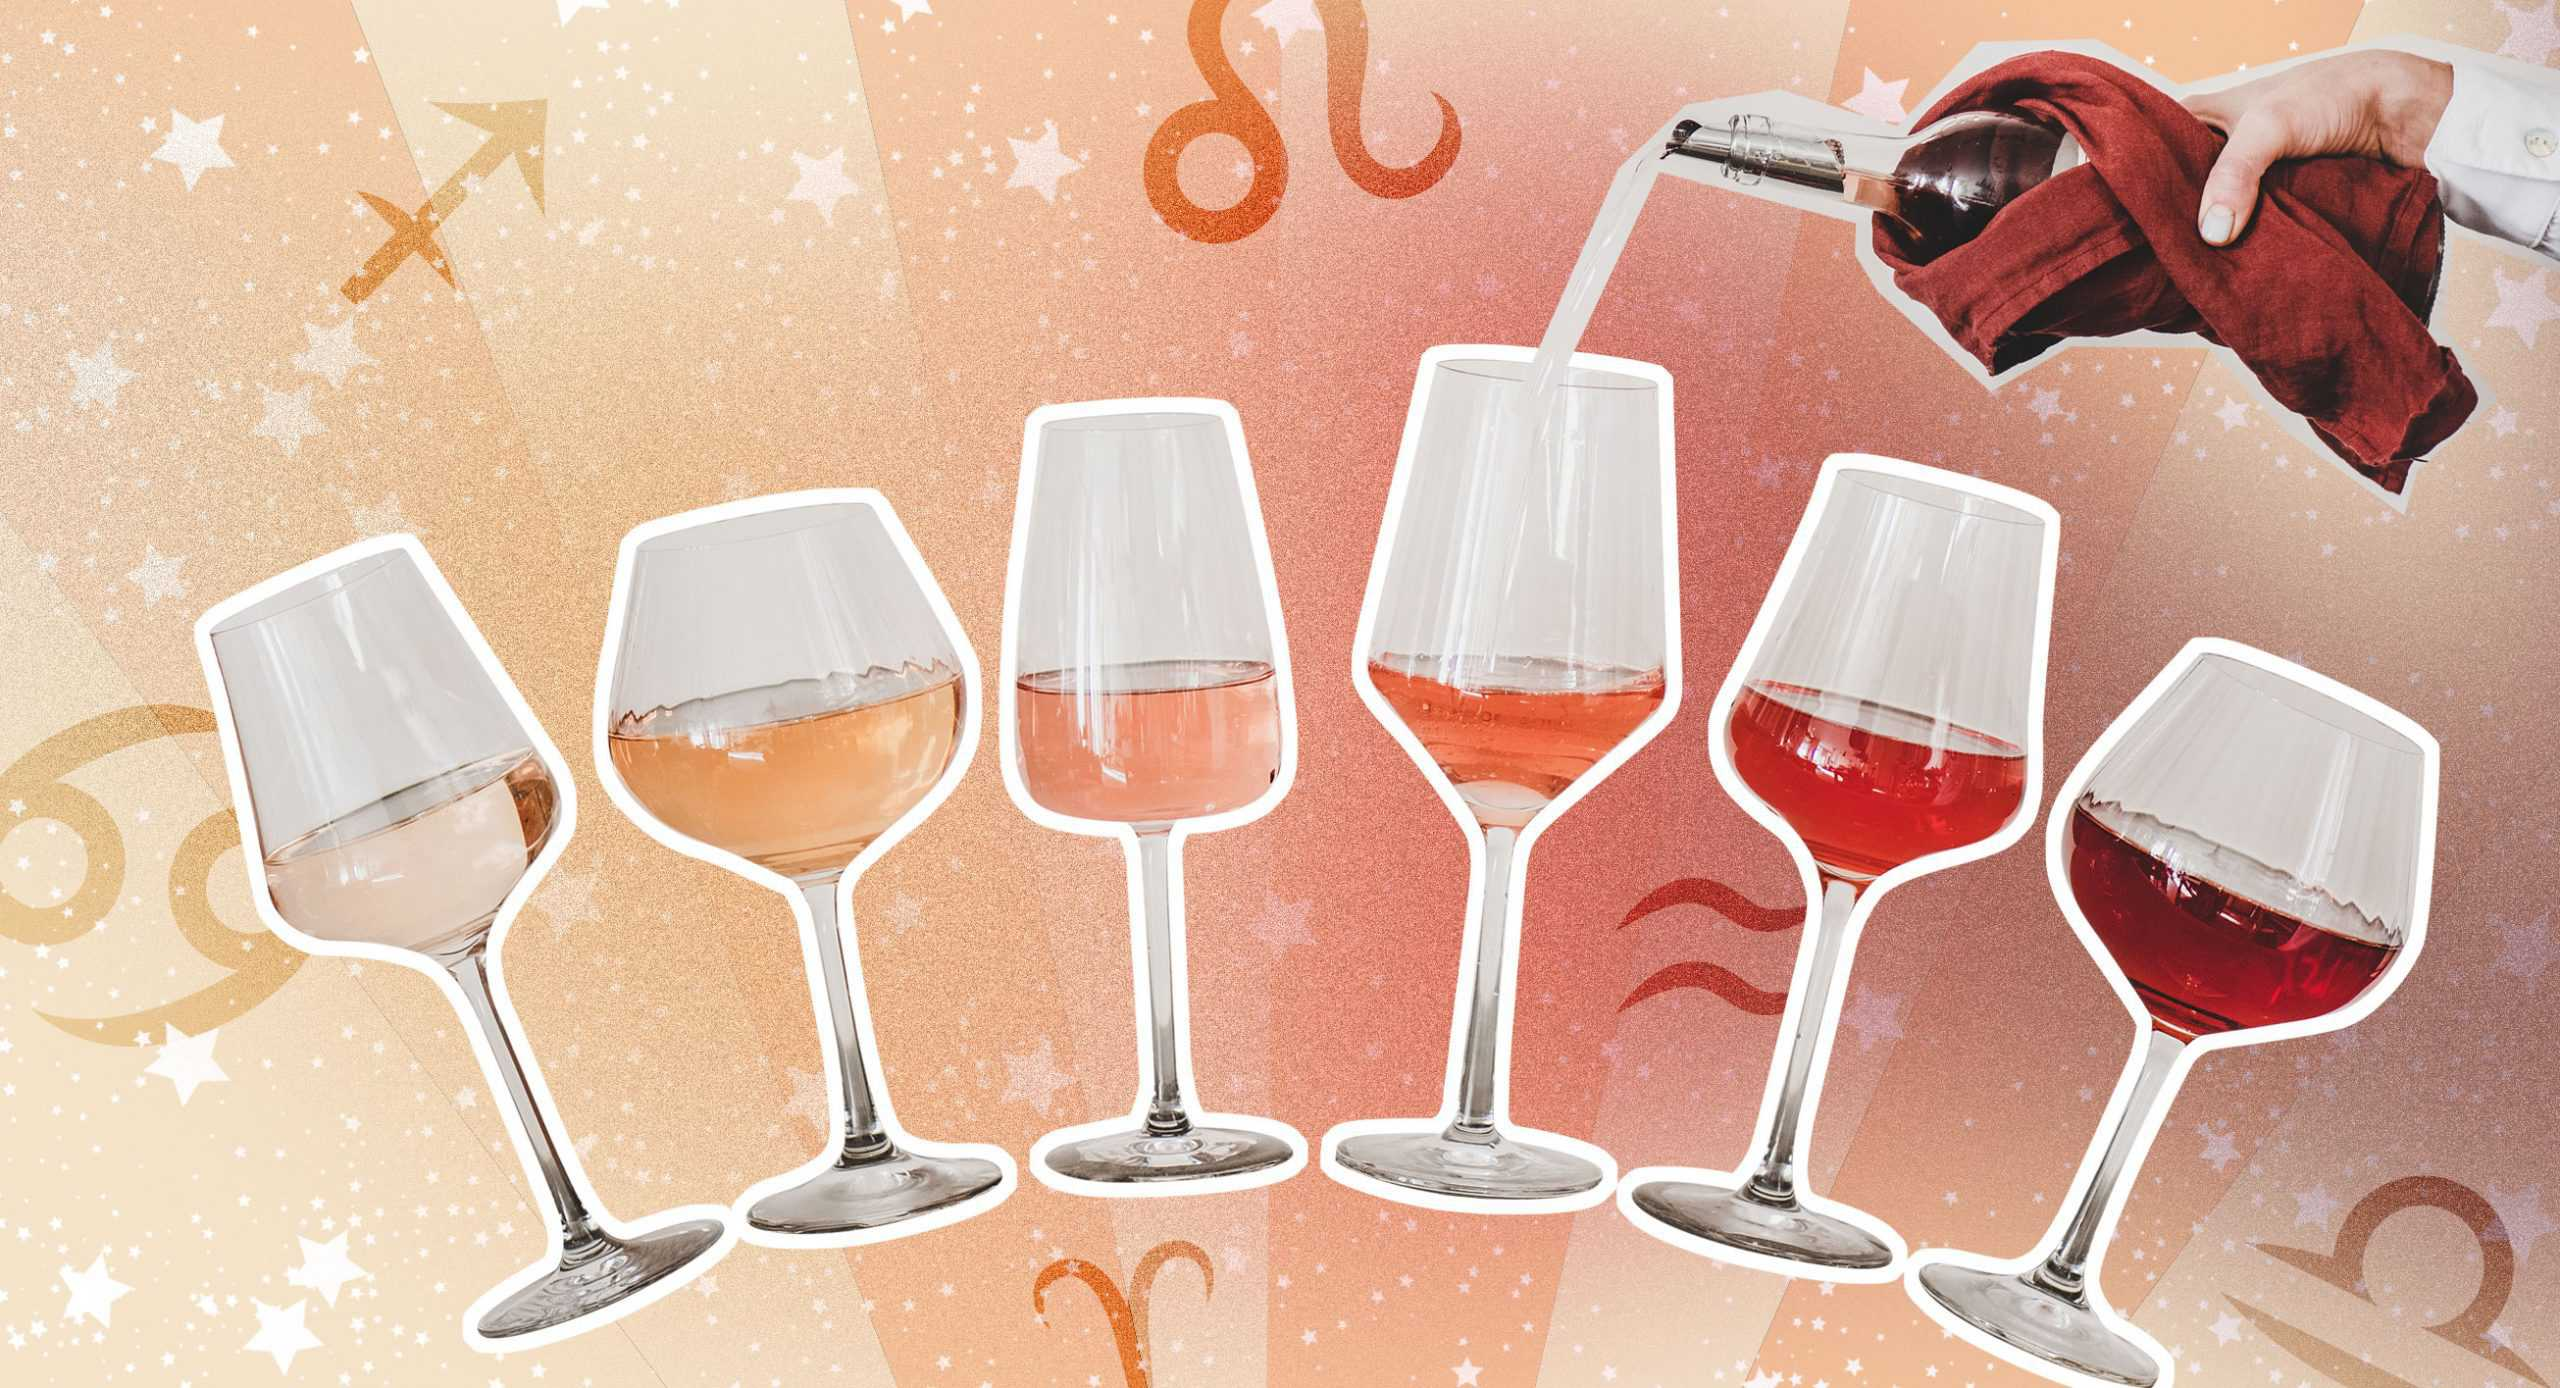 illustration of wines poured into glasses